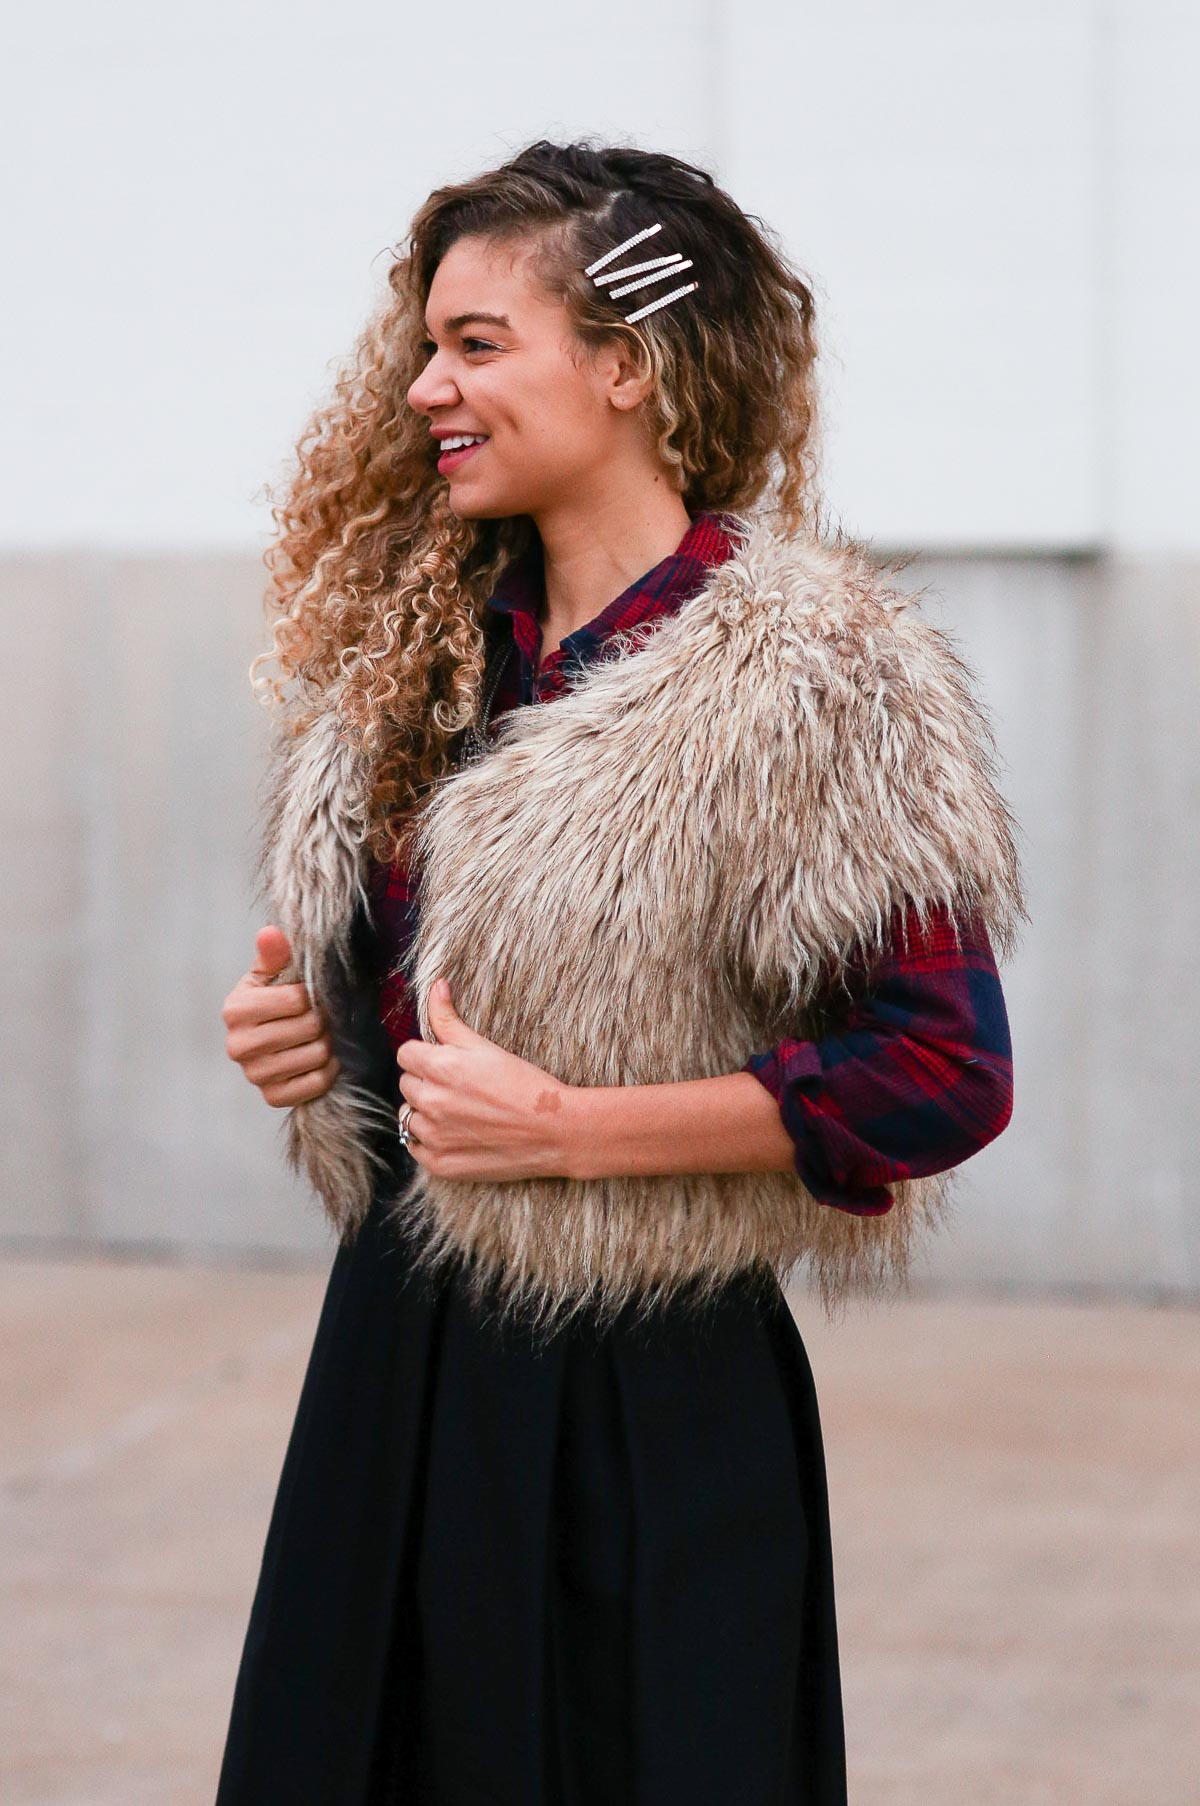 holiday outfits featuring a high waist skirt, plaid shirt, and faux fur